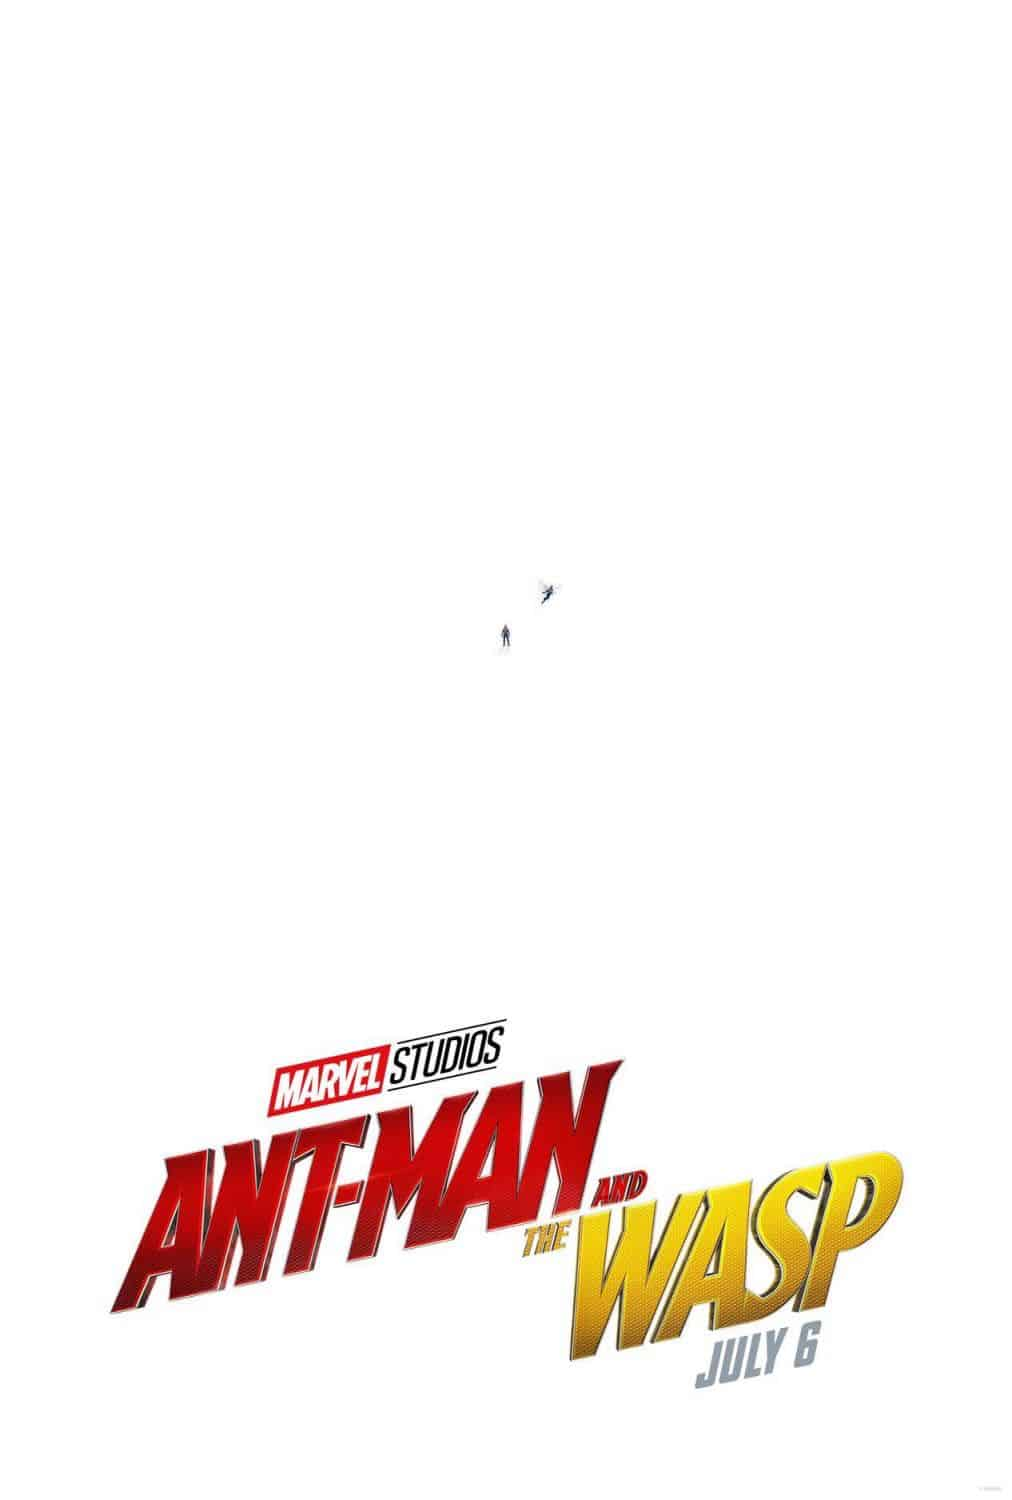 ANT-MAN-AND-THE-WASP-Movie-Poster